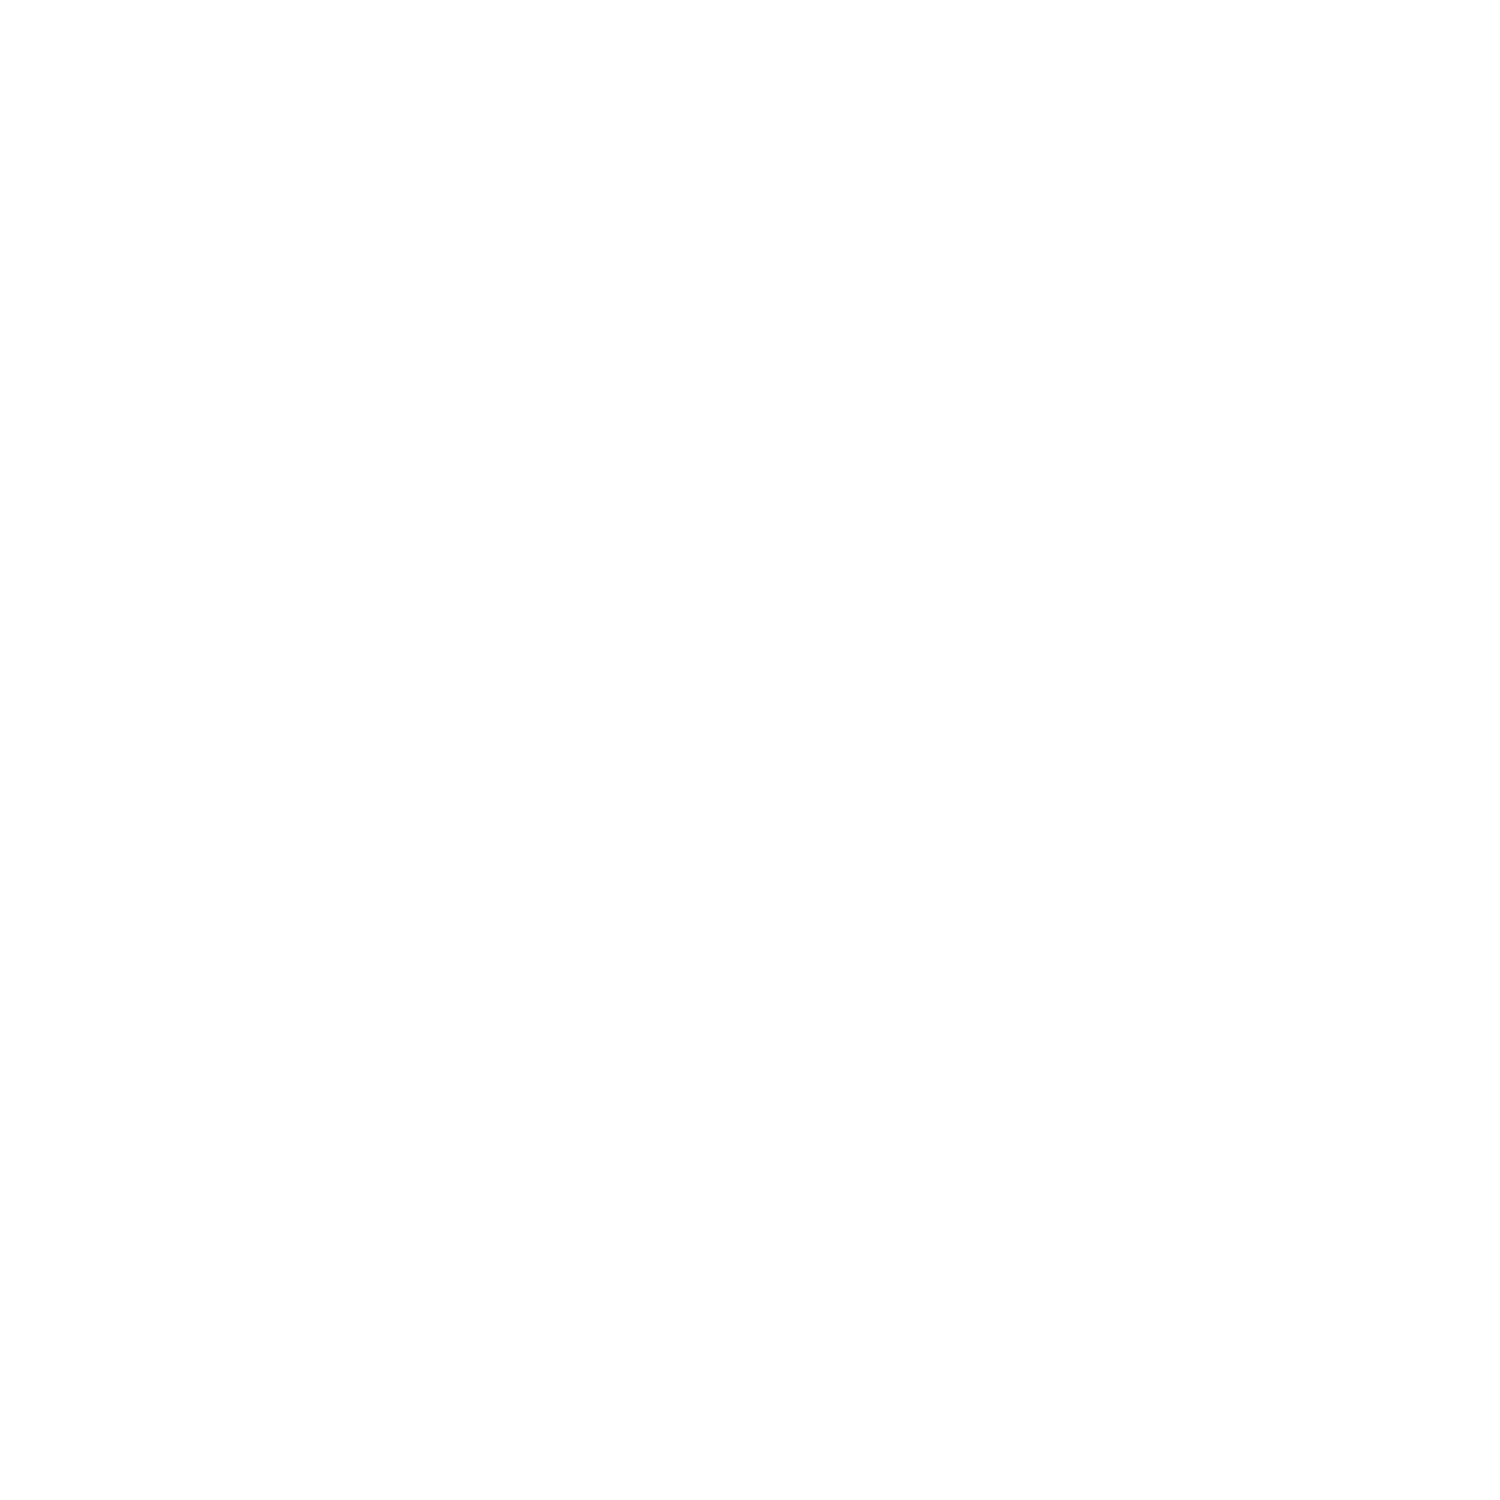 Fifth Element Camping